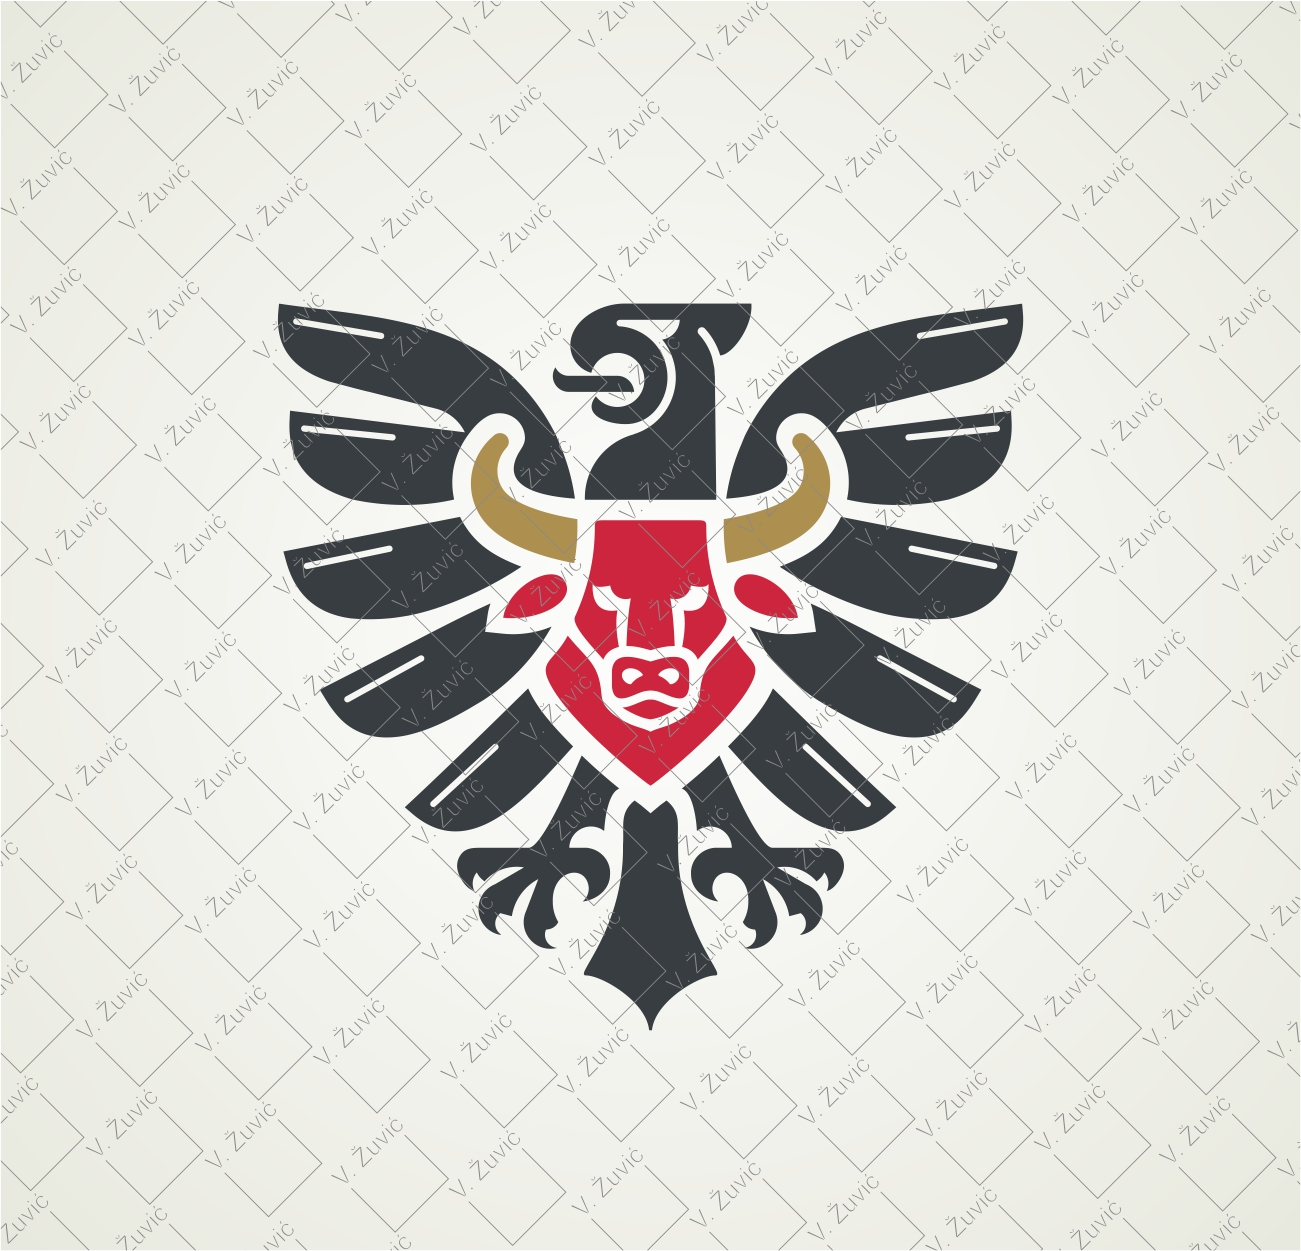 Logo is sold to the client. Eagle and bull logo design.   Logotip je dostupan za prodaju. Dizajn logotipa - bik i orao.